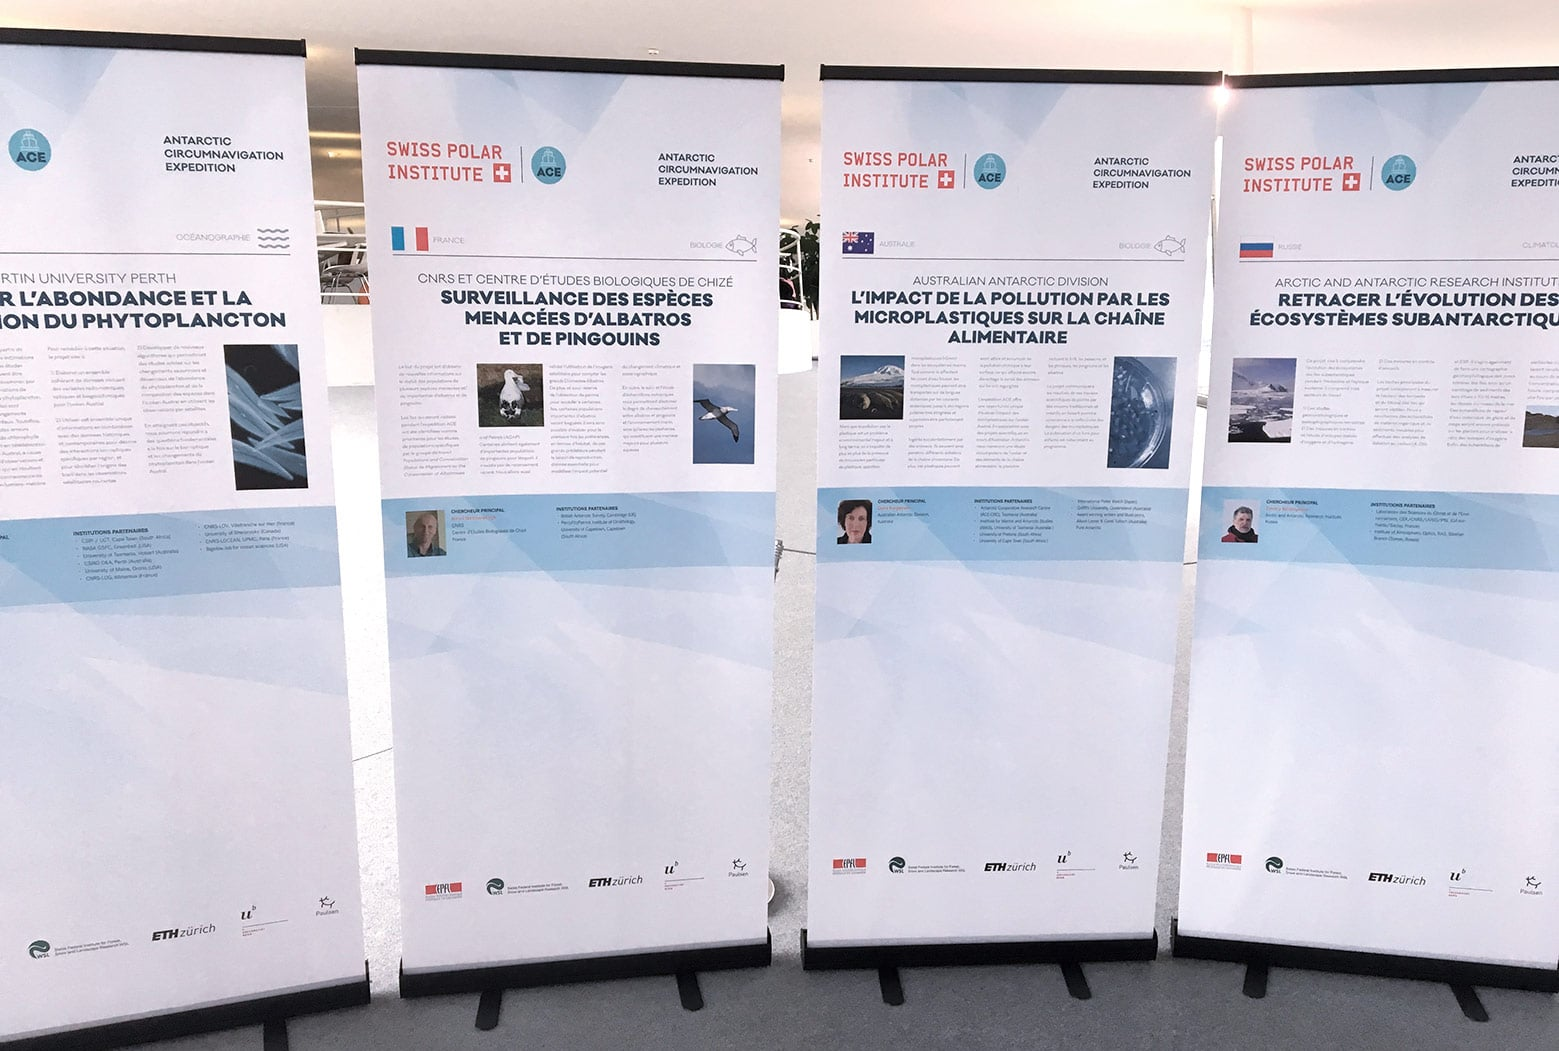 Exposition Roll-ups Antarctic Circumnavigation Expedition (EPFL) vue 2